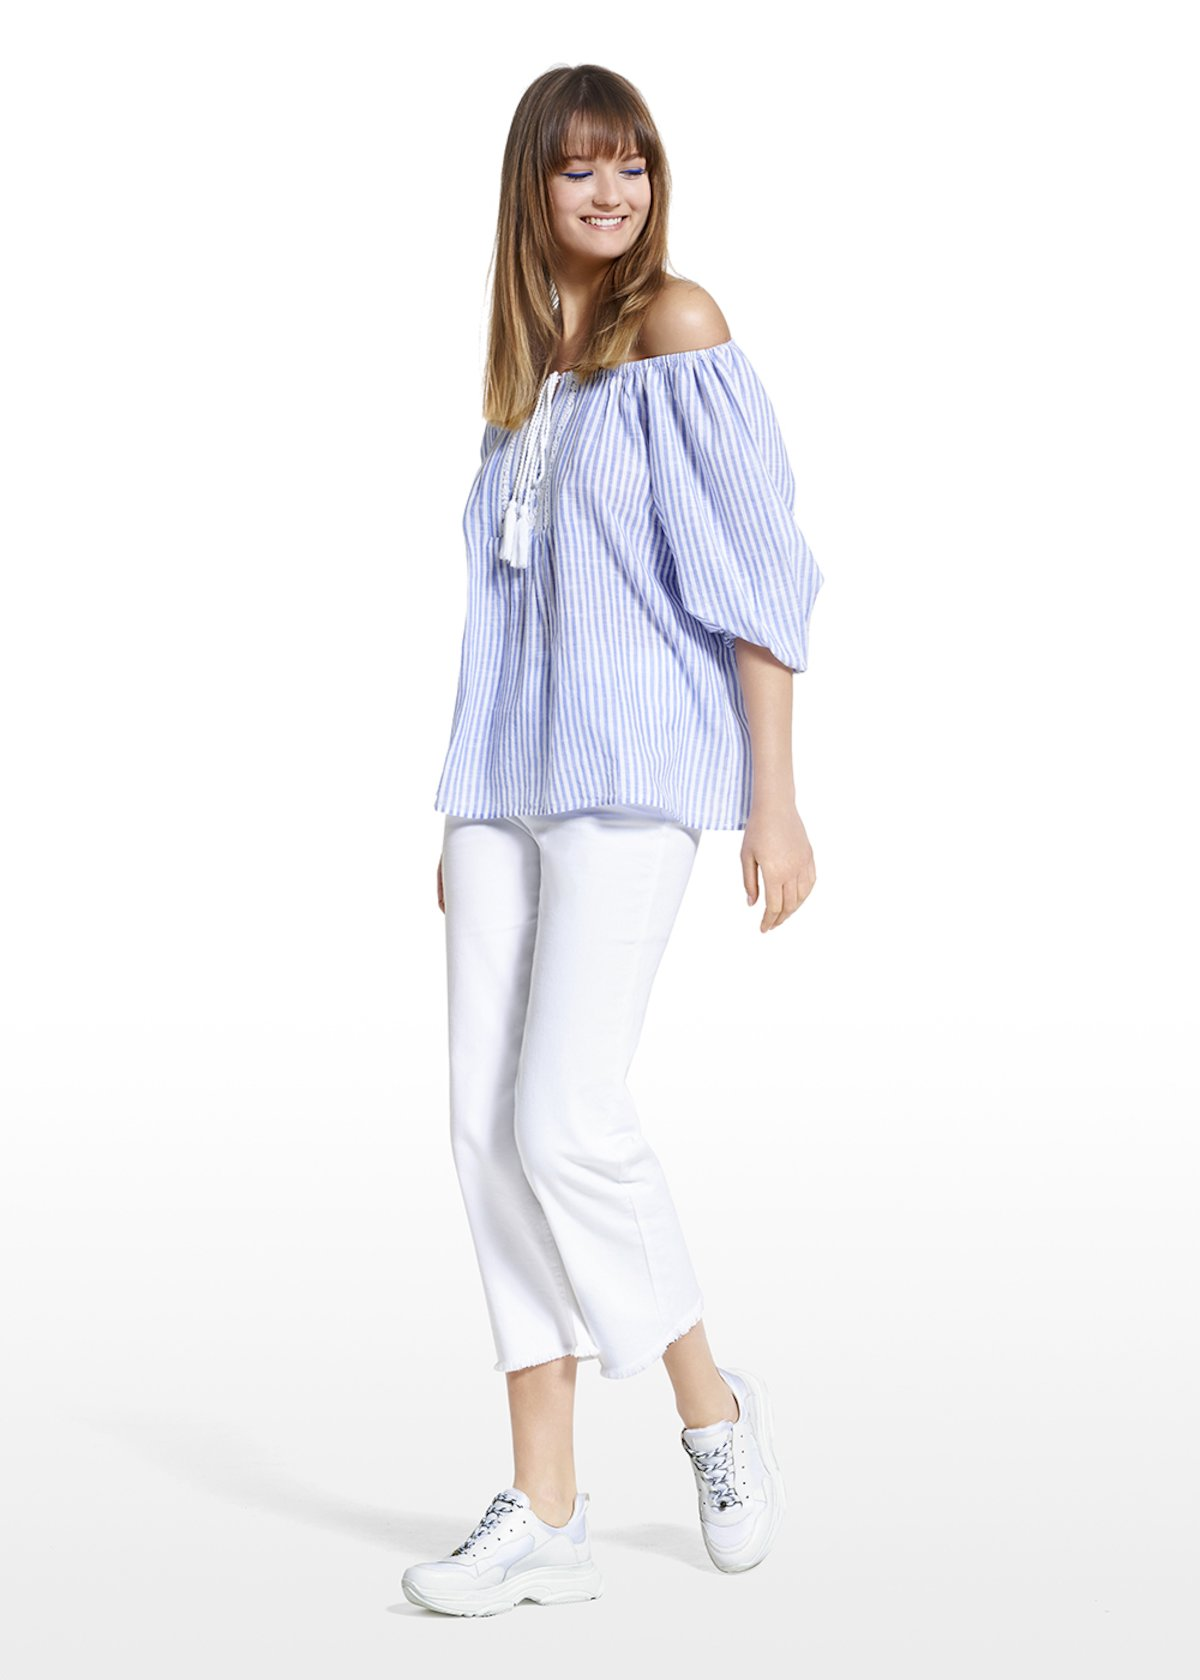 Charley blouse fantasy stripes with embroidery on the front - Blue / White Stripes - Woman - Category image